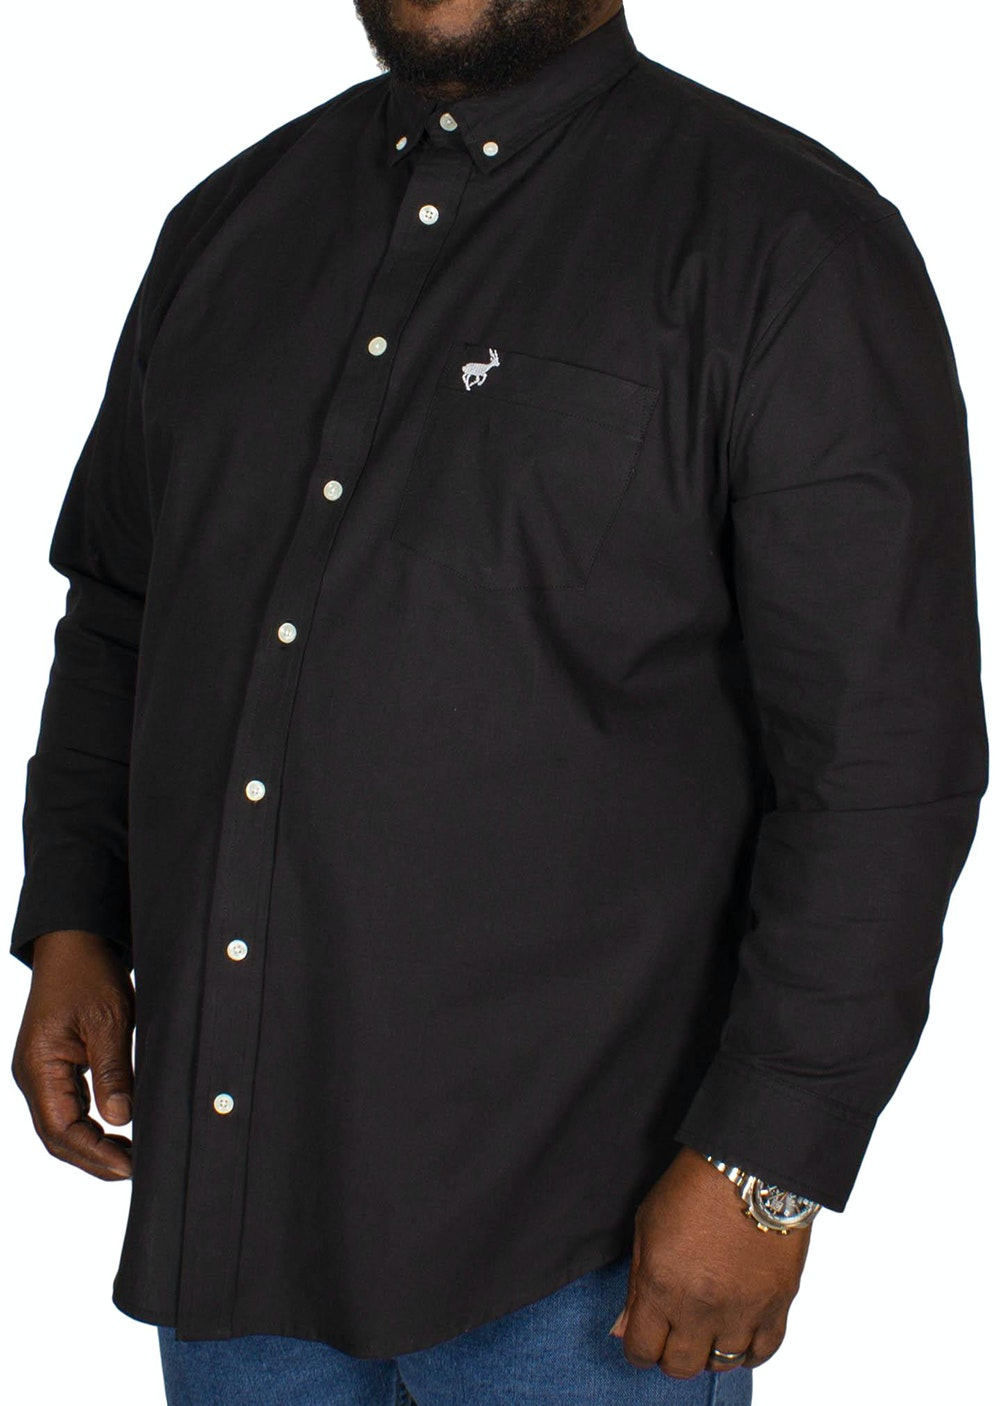 Bigdude Long Sleeve Oxford Shirt Black